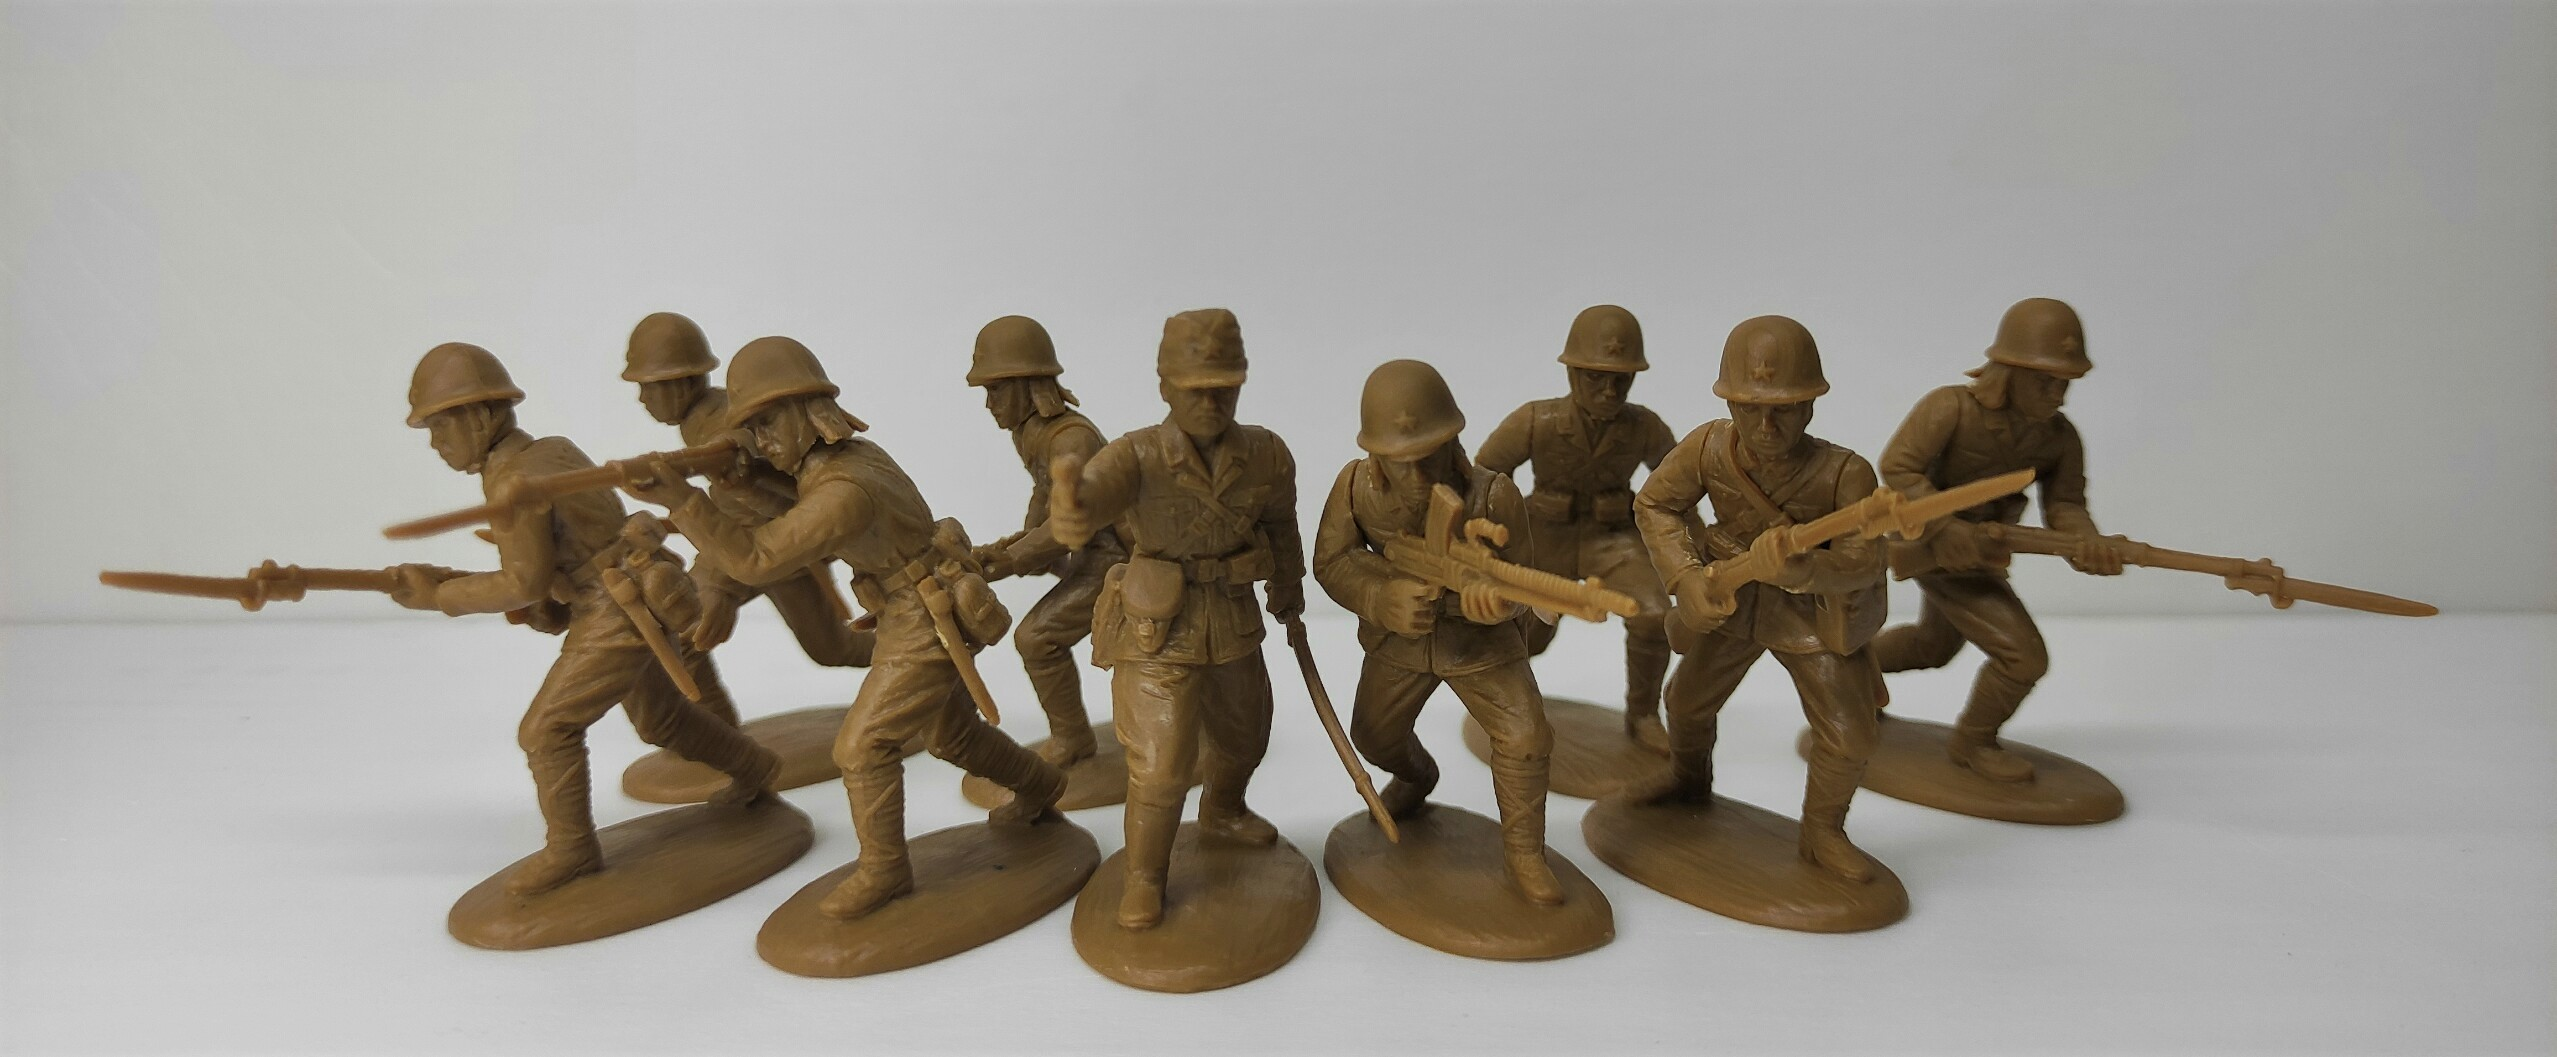 54 PWJ 01 Infantry - Rifle Section